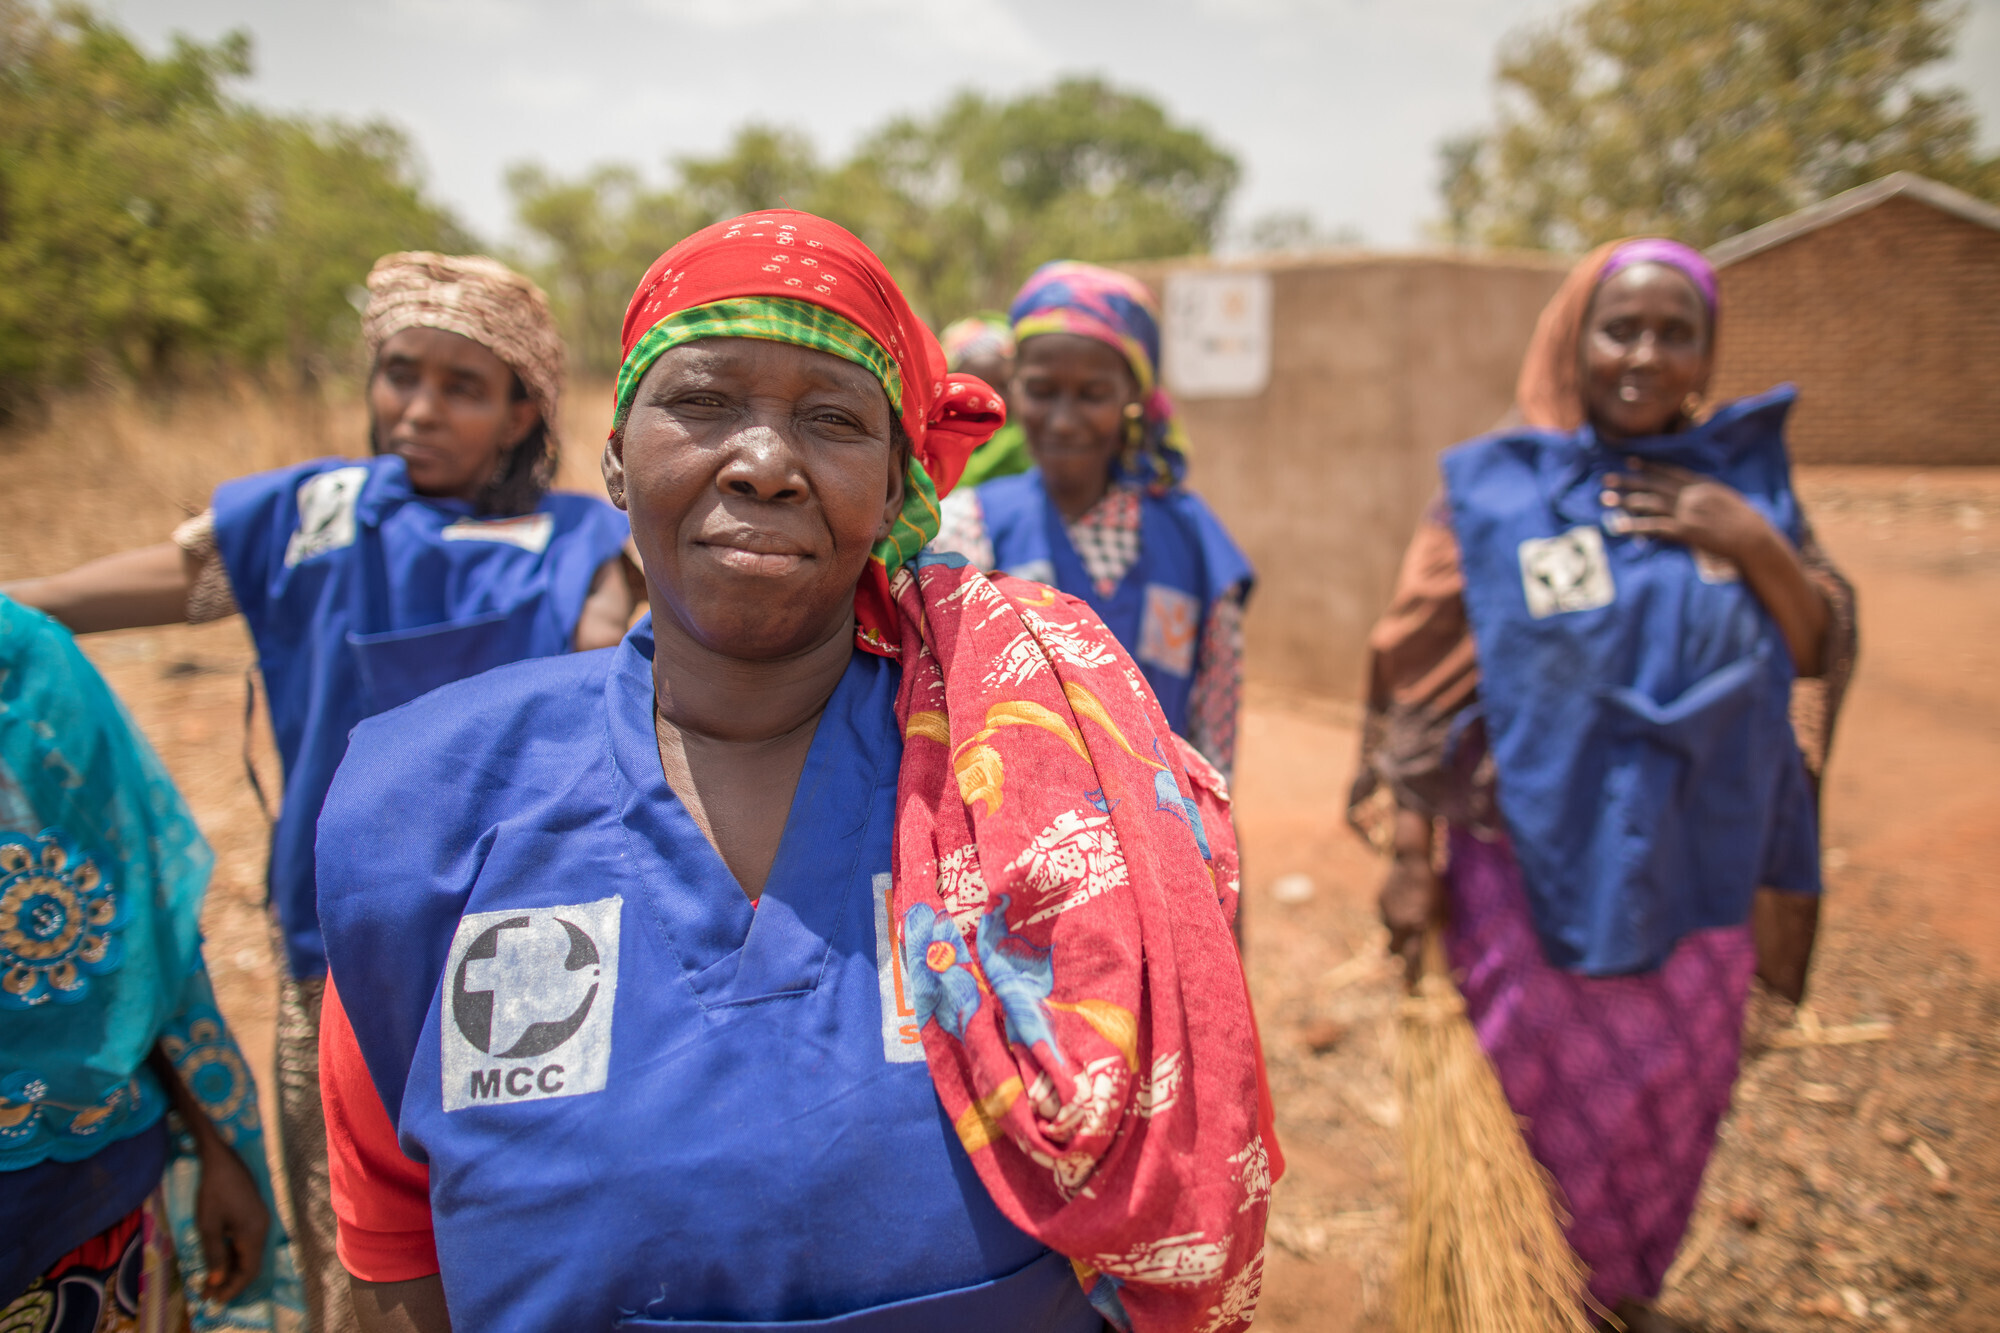 Aïchatou Hamidou was displaced from Central African Republic to a refugee camp in Chad. Through your support, she now leads the WASH (water, sanitation and hygiene) team, a group of women who maintain the latrines and keep the water pumps clean. (MCC photo/Colin Vandenberg)